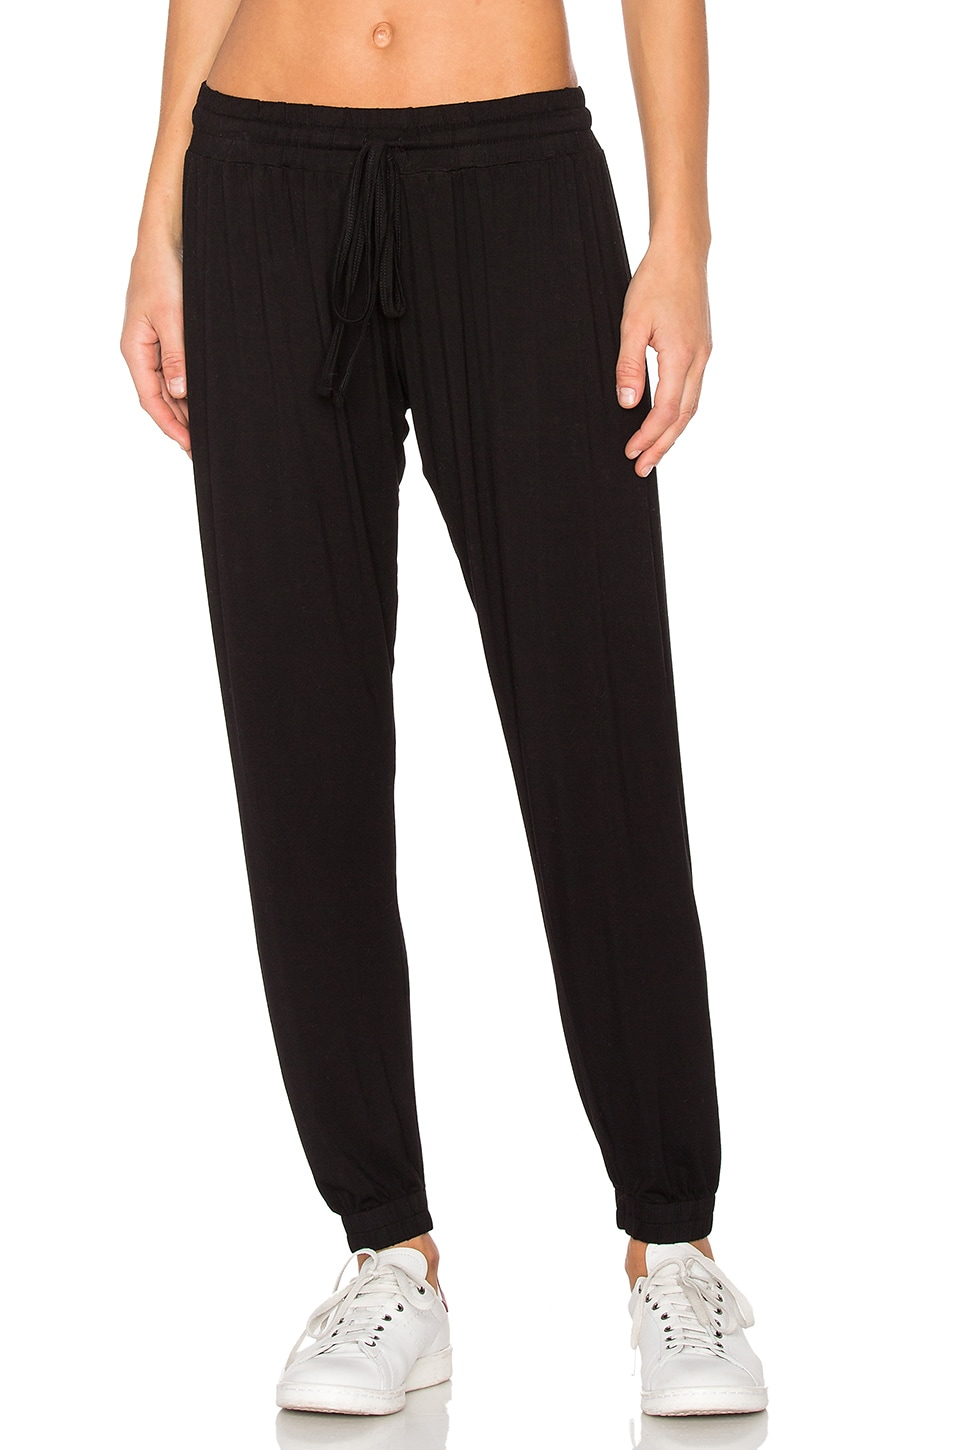 Radley Pant by Michael Lauren